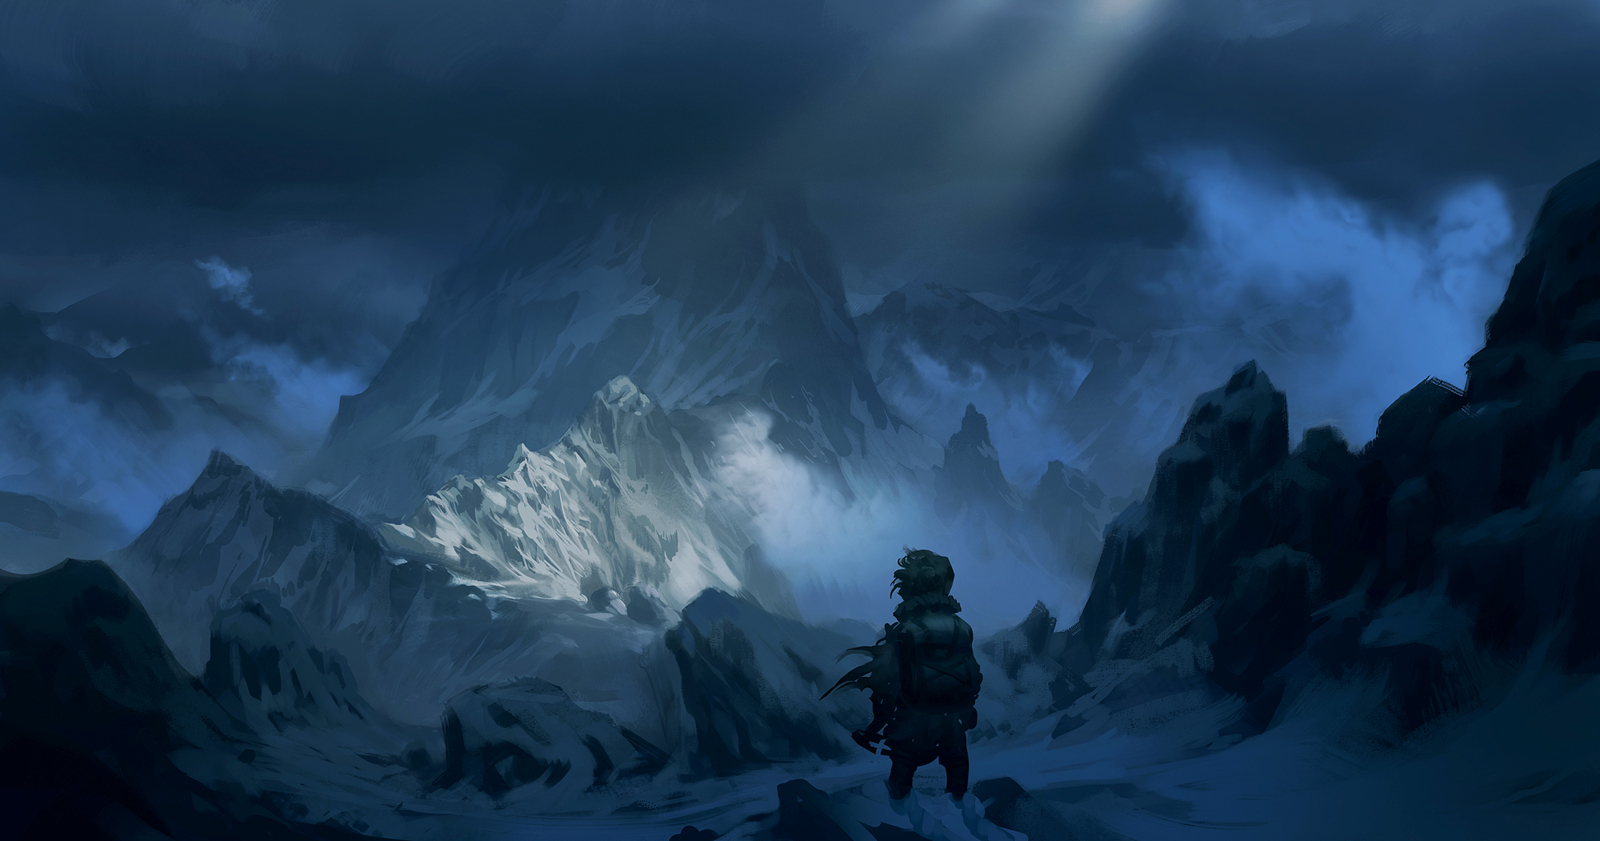 Far Over the Misty Mountains Cold